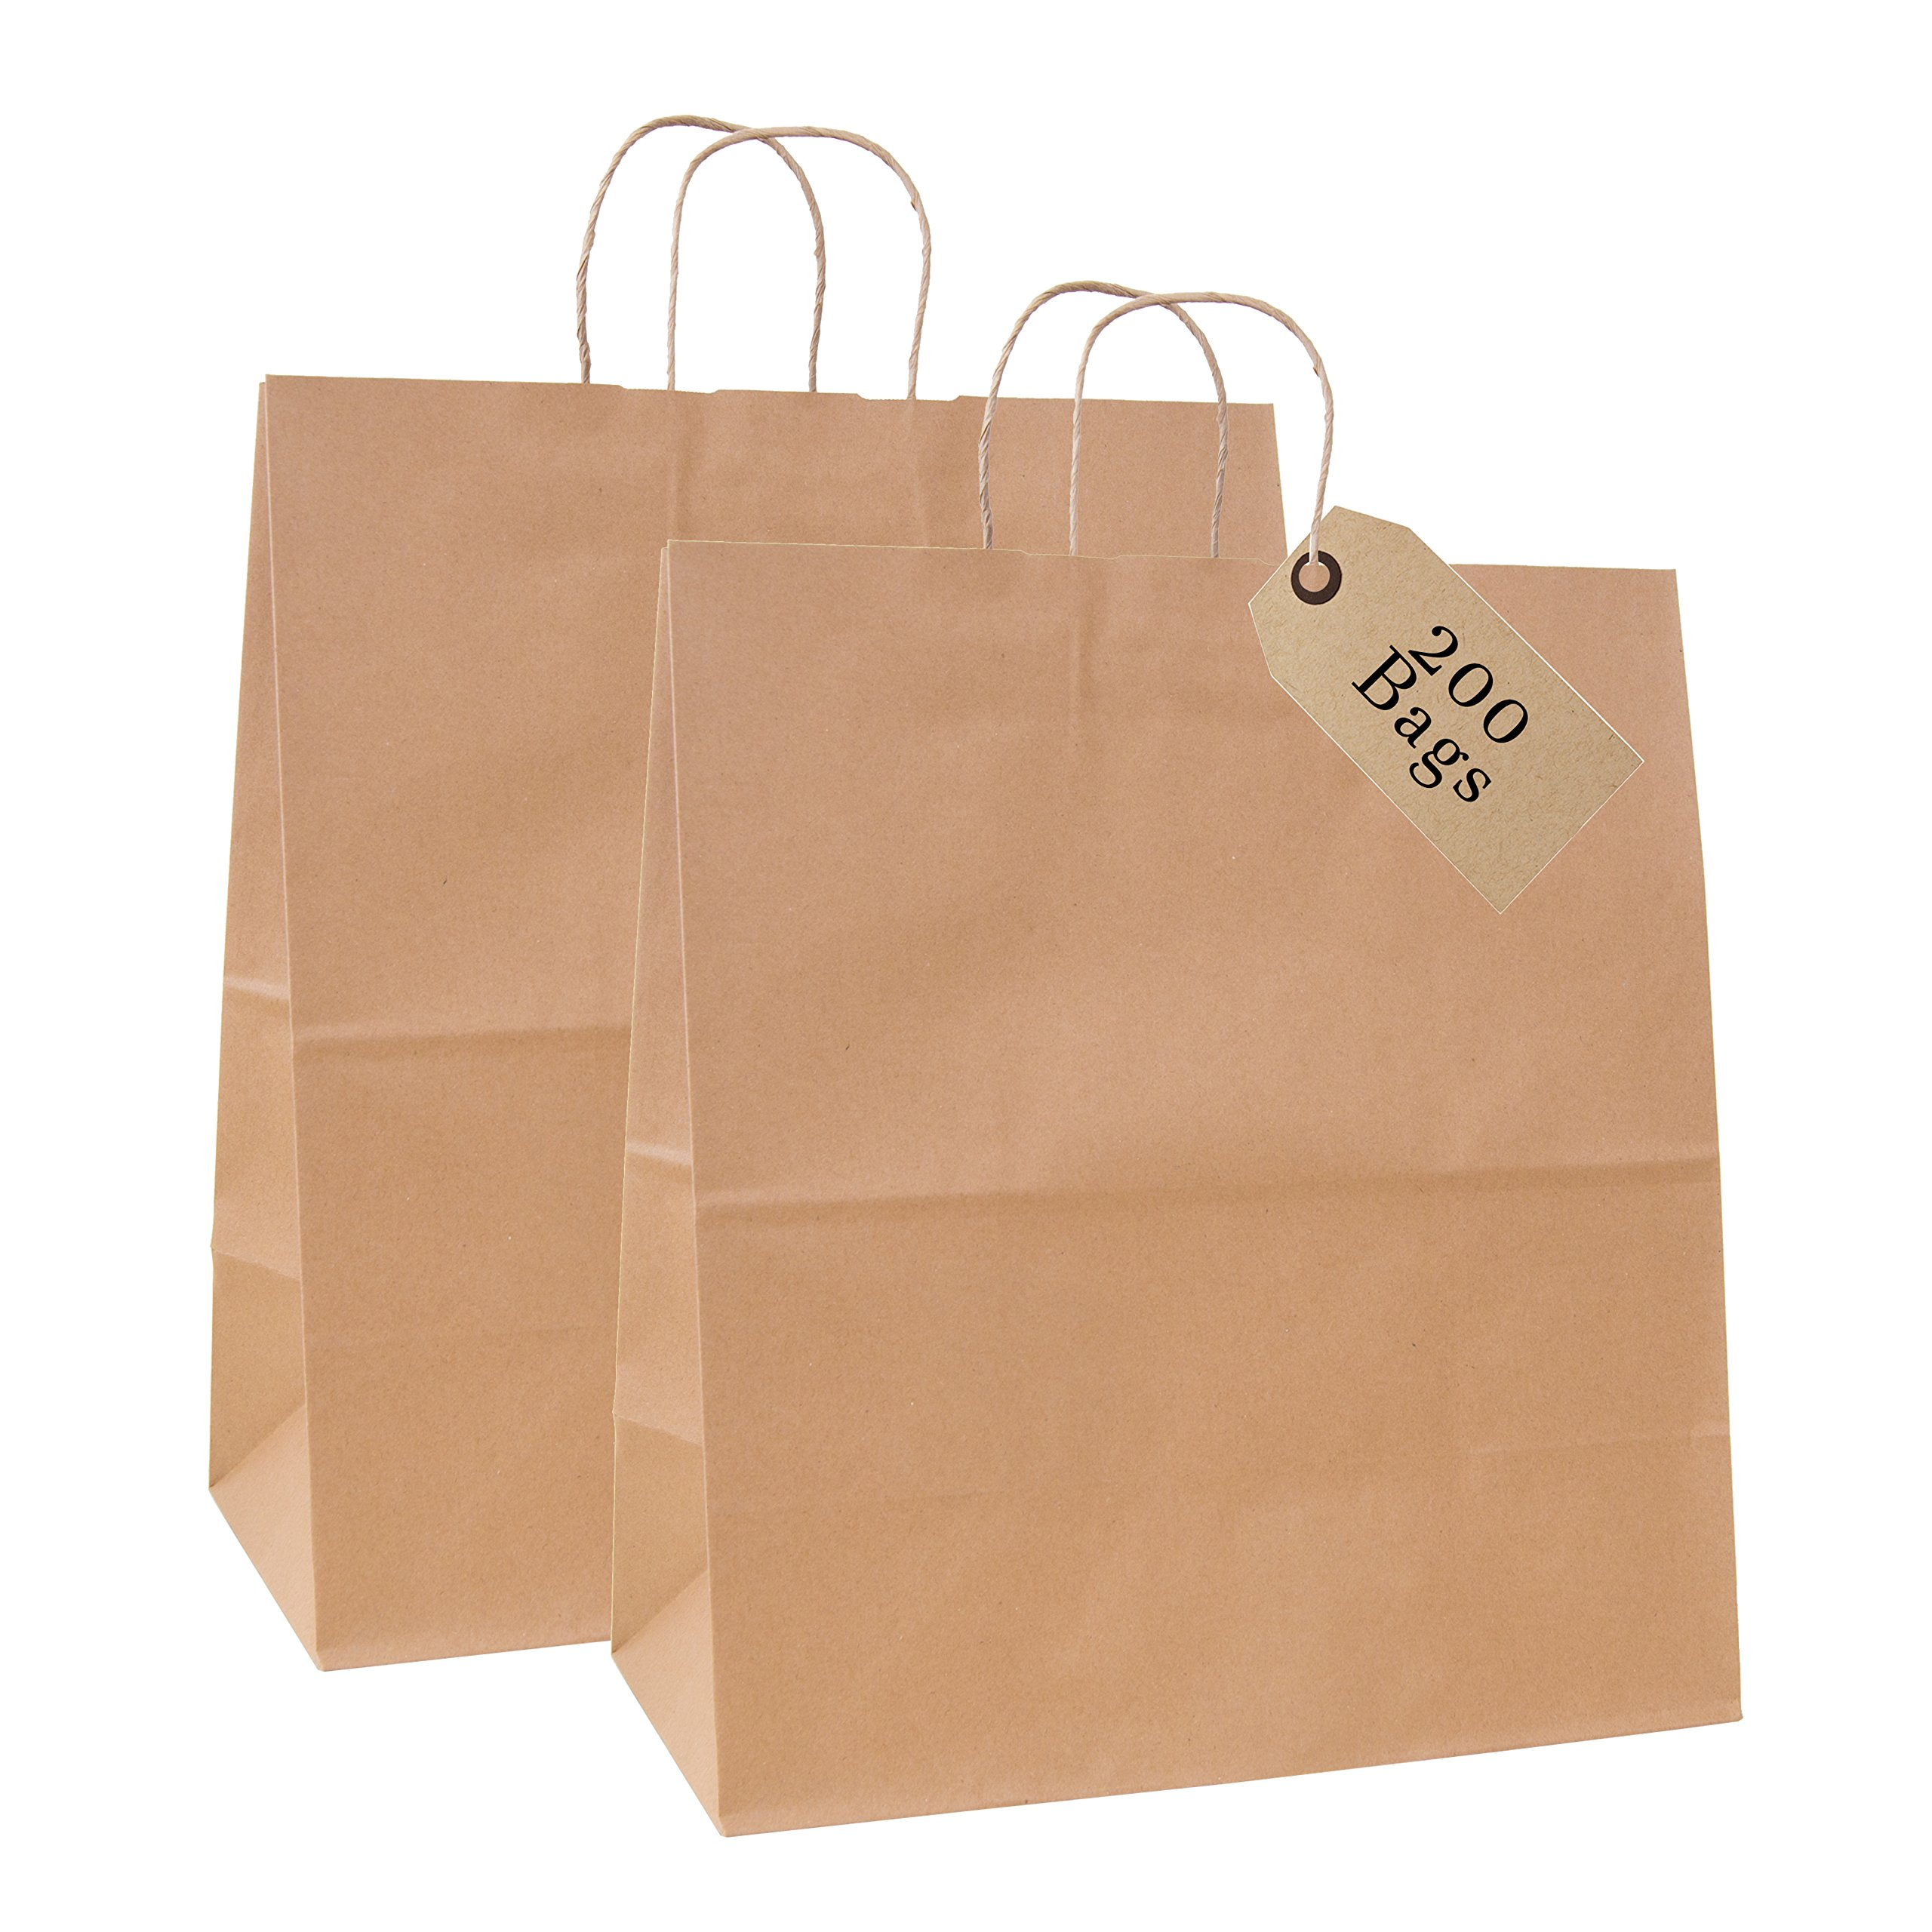 Incredible Packaging - 18'' x 7'' x 18'' Jumbo Kraft Paper Bags with Handles for Shopping, Retail and Merchandise. Strong and Reusable - 80 Paper Thickness- 100% Recycled (200, Brown)